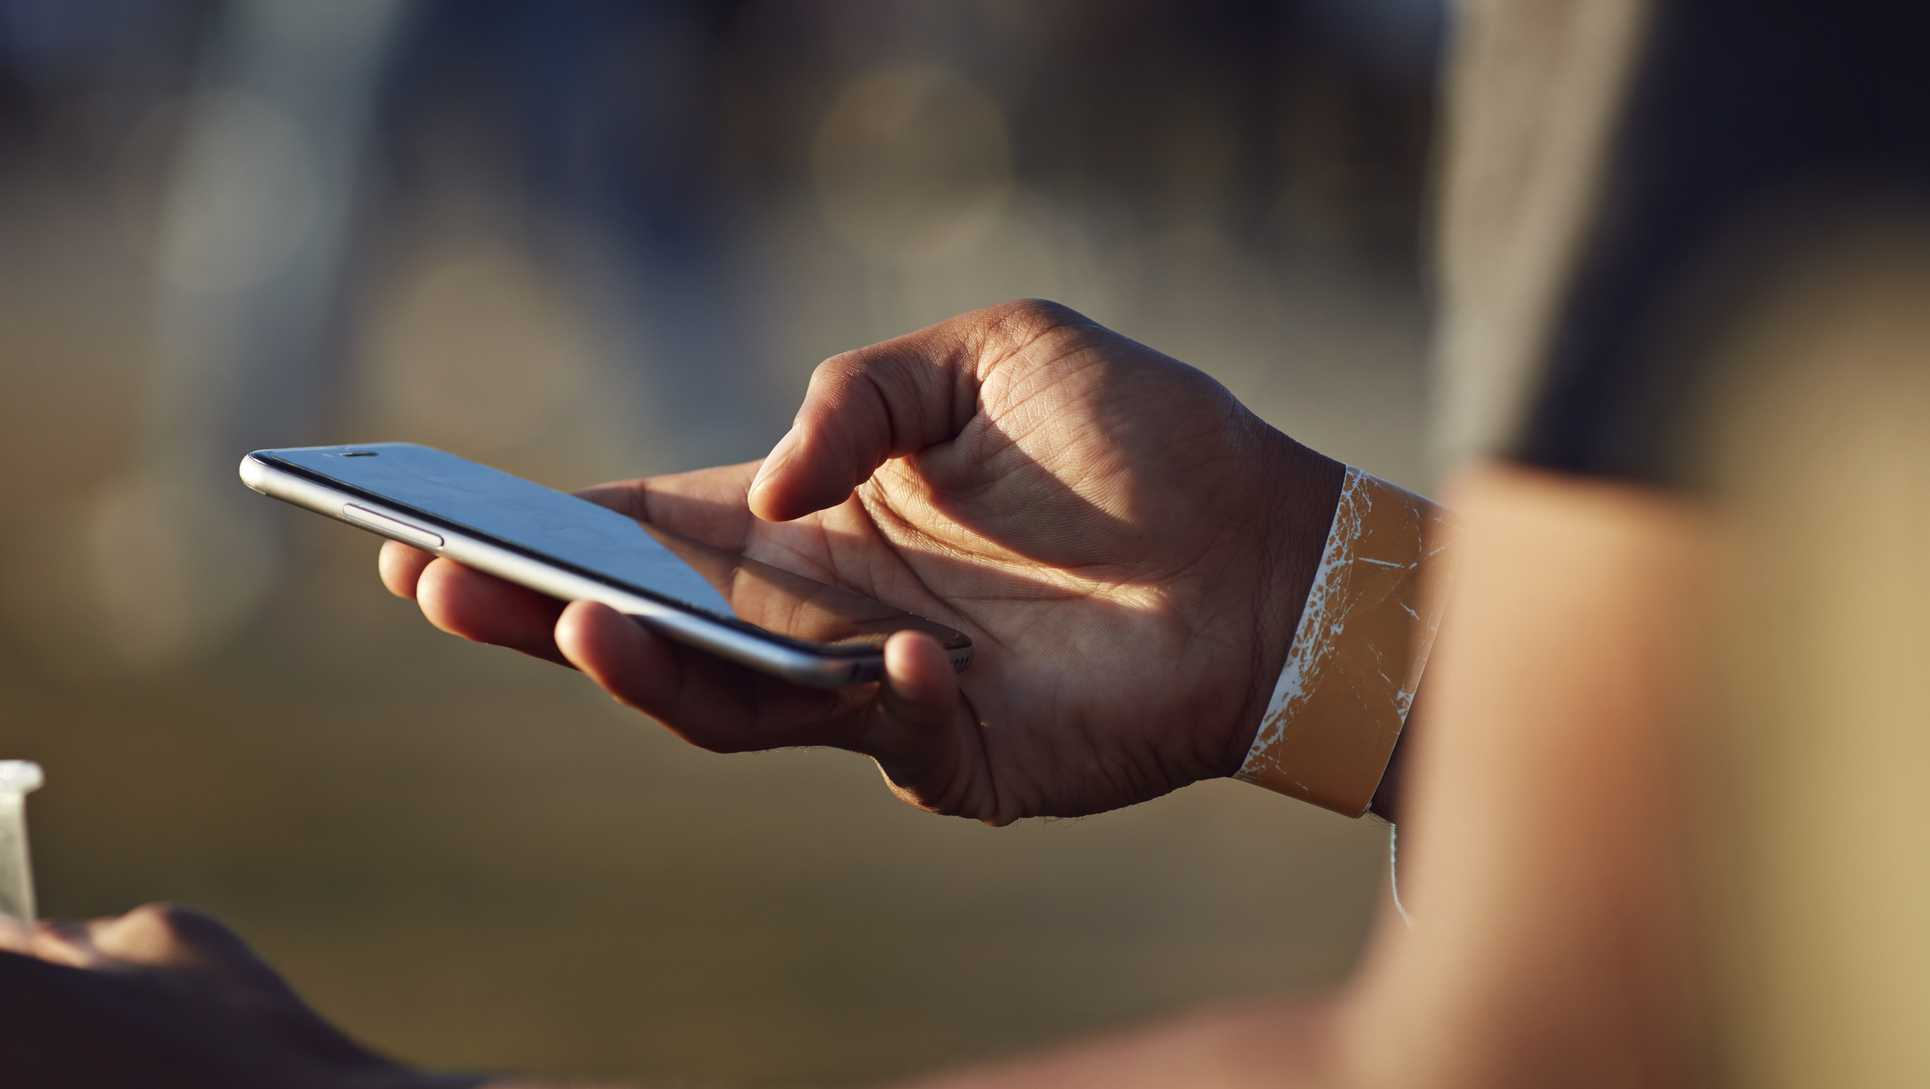 smartphone usage among young people Chapter one: a portrait of smartphone ownership by aaron smith as in past surveys, smartphone ownership is highest among younger americans.